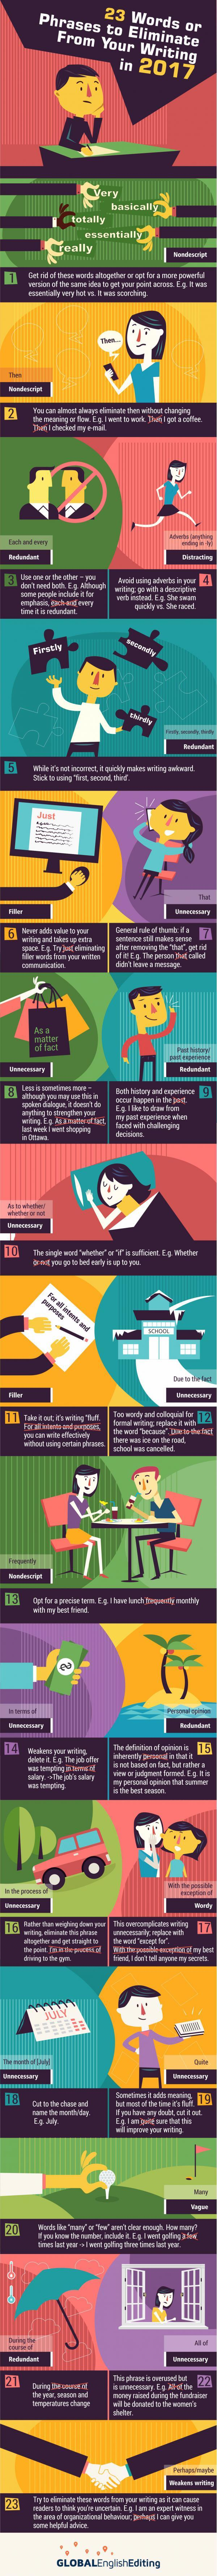 23 Words or Phrases to Eliminate From Your Writing Infographic